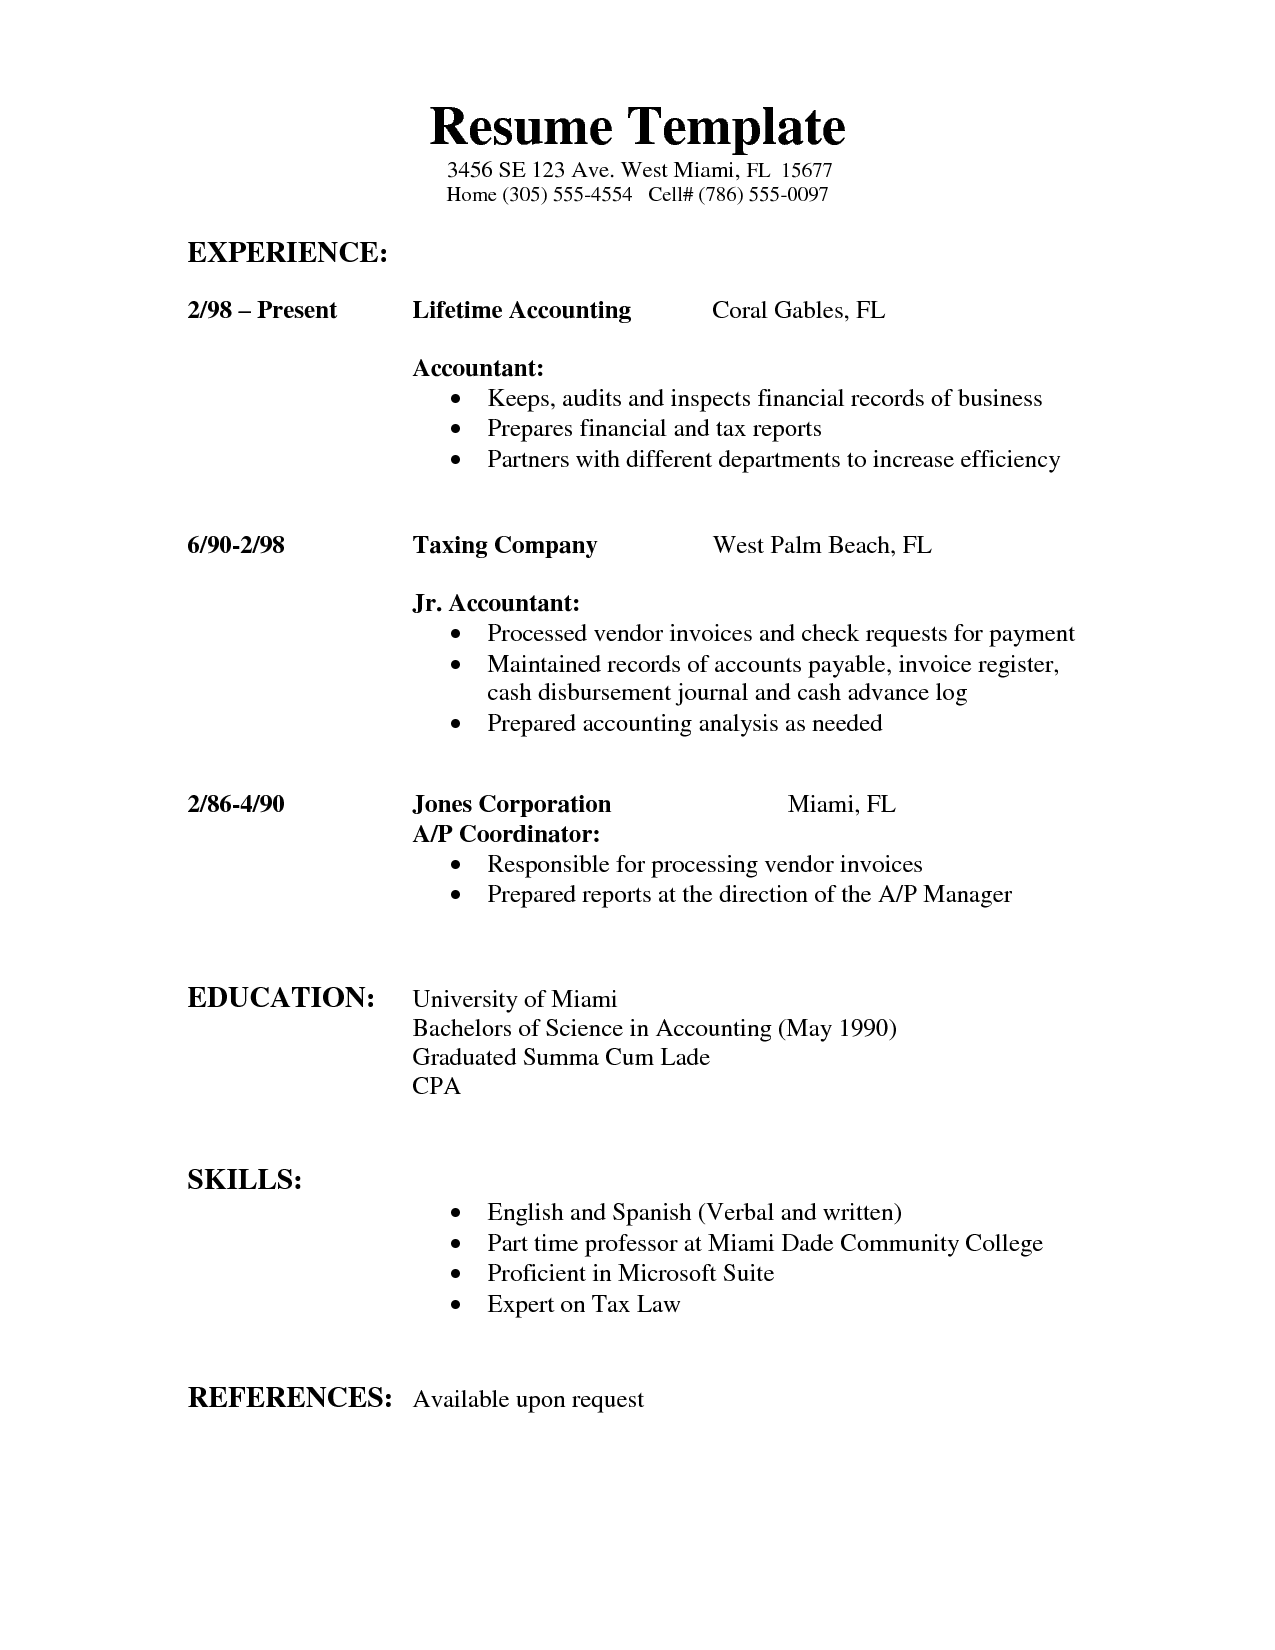 easy resume templates resume format doc file download resume format doc file download microsoft job resume template seangarrette free mac resume